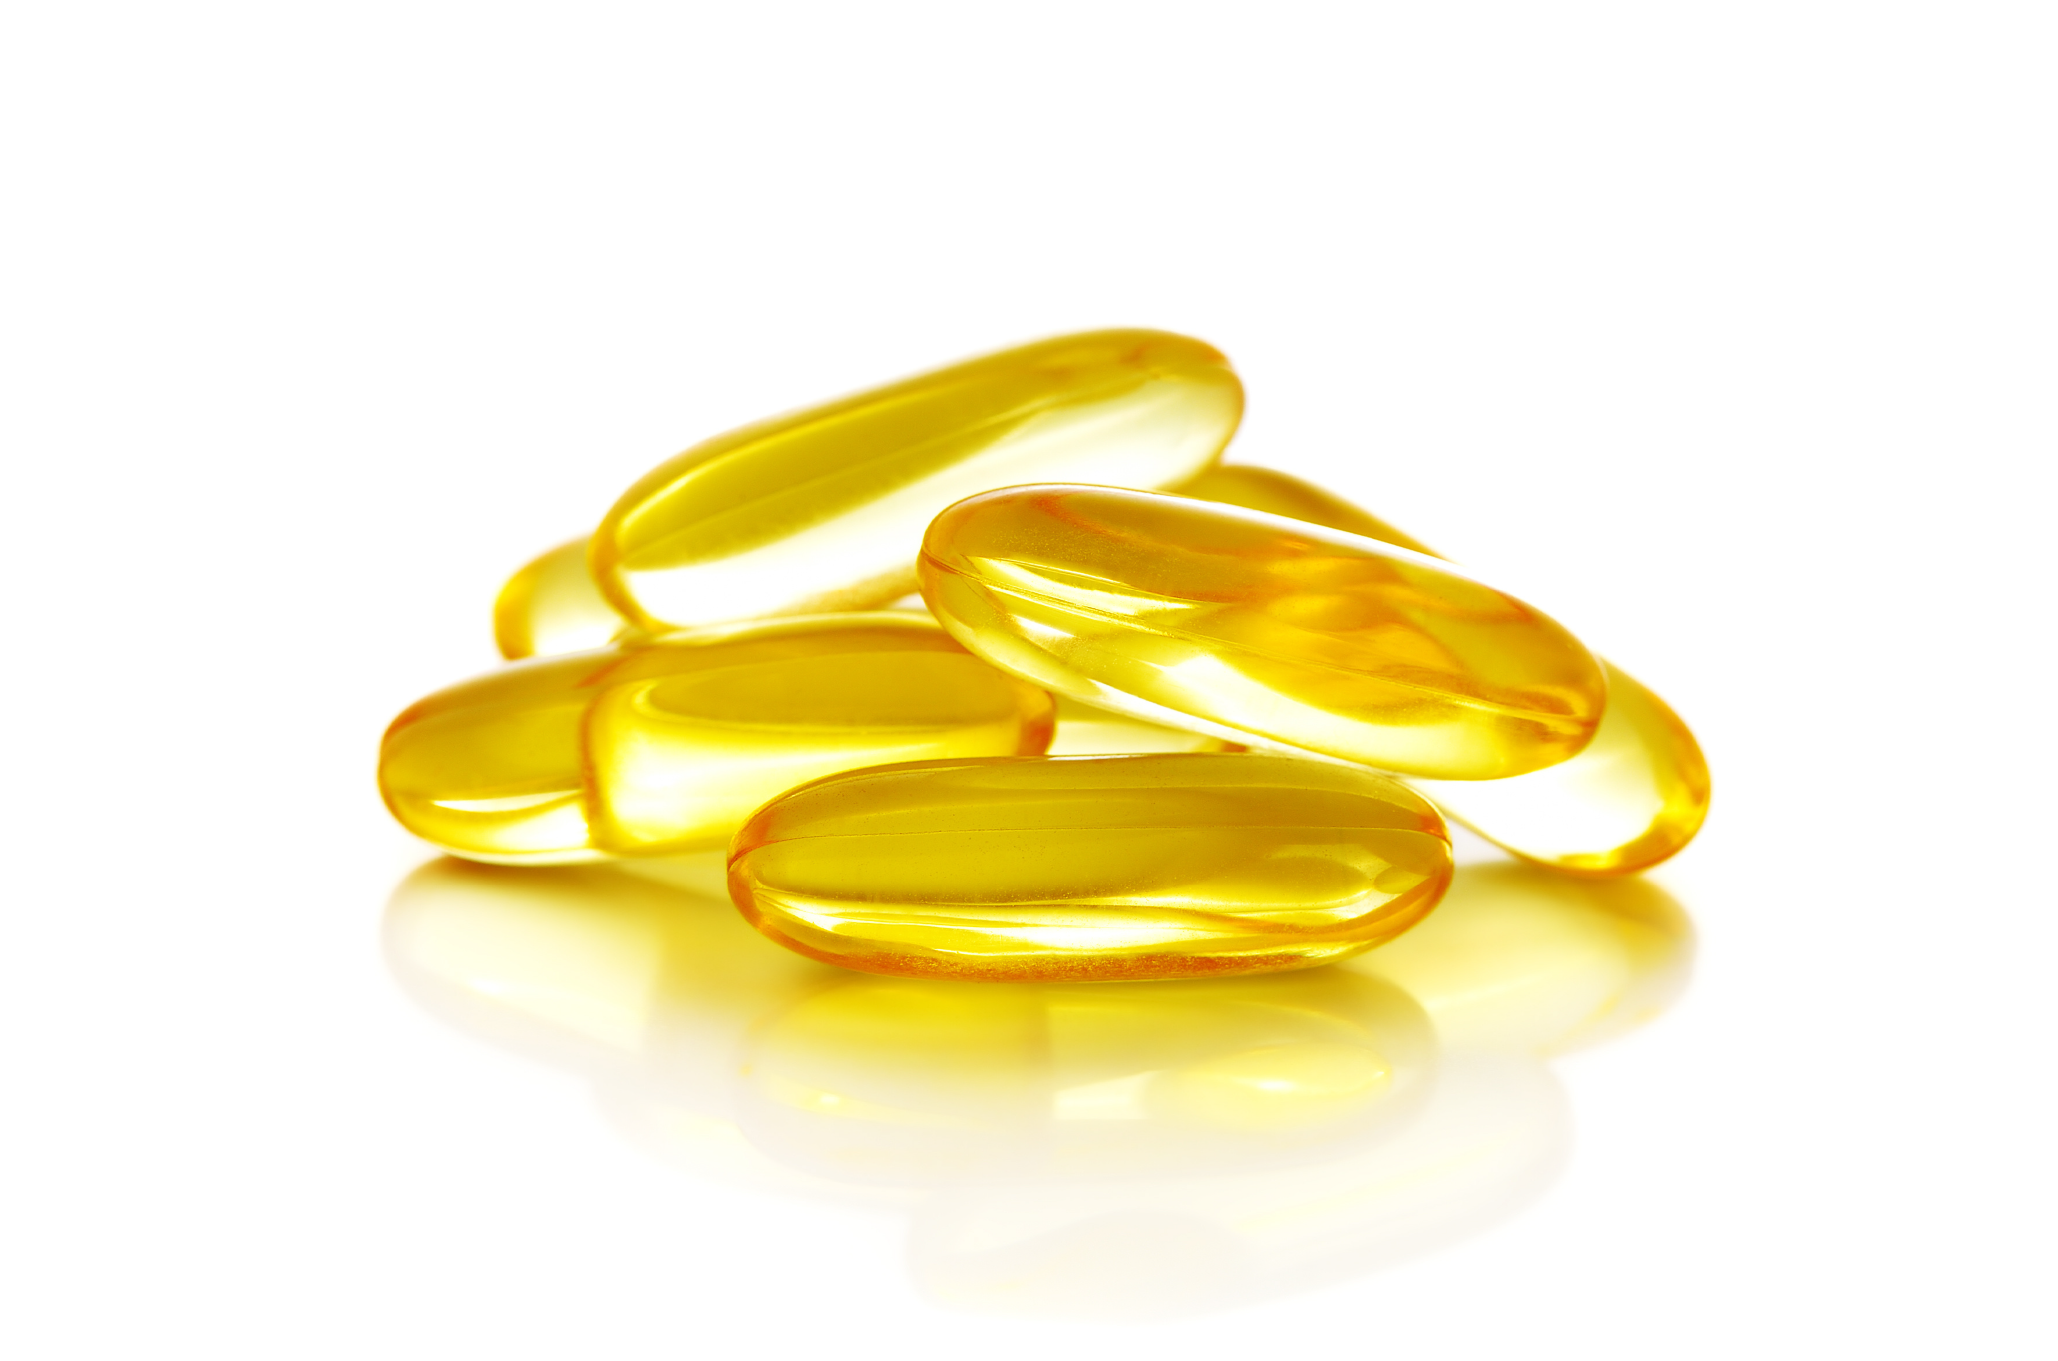 ' fish oil ' ' fish oil images ' ' fish oil benefits '